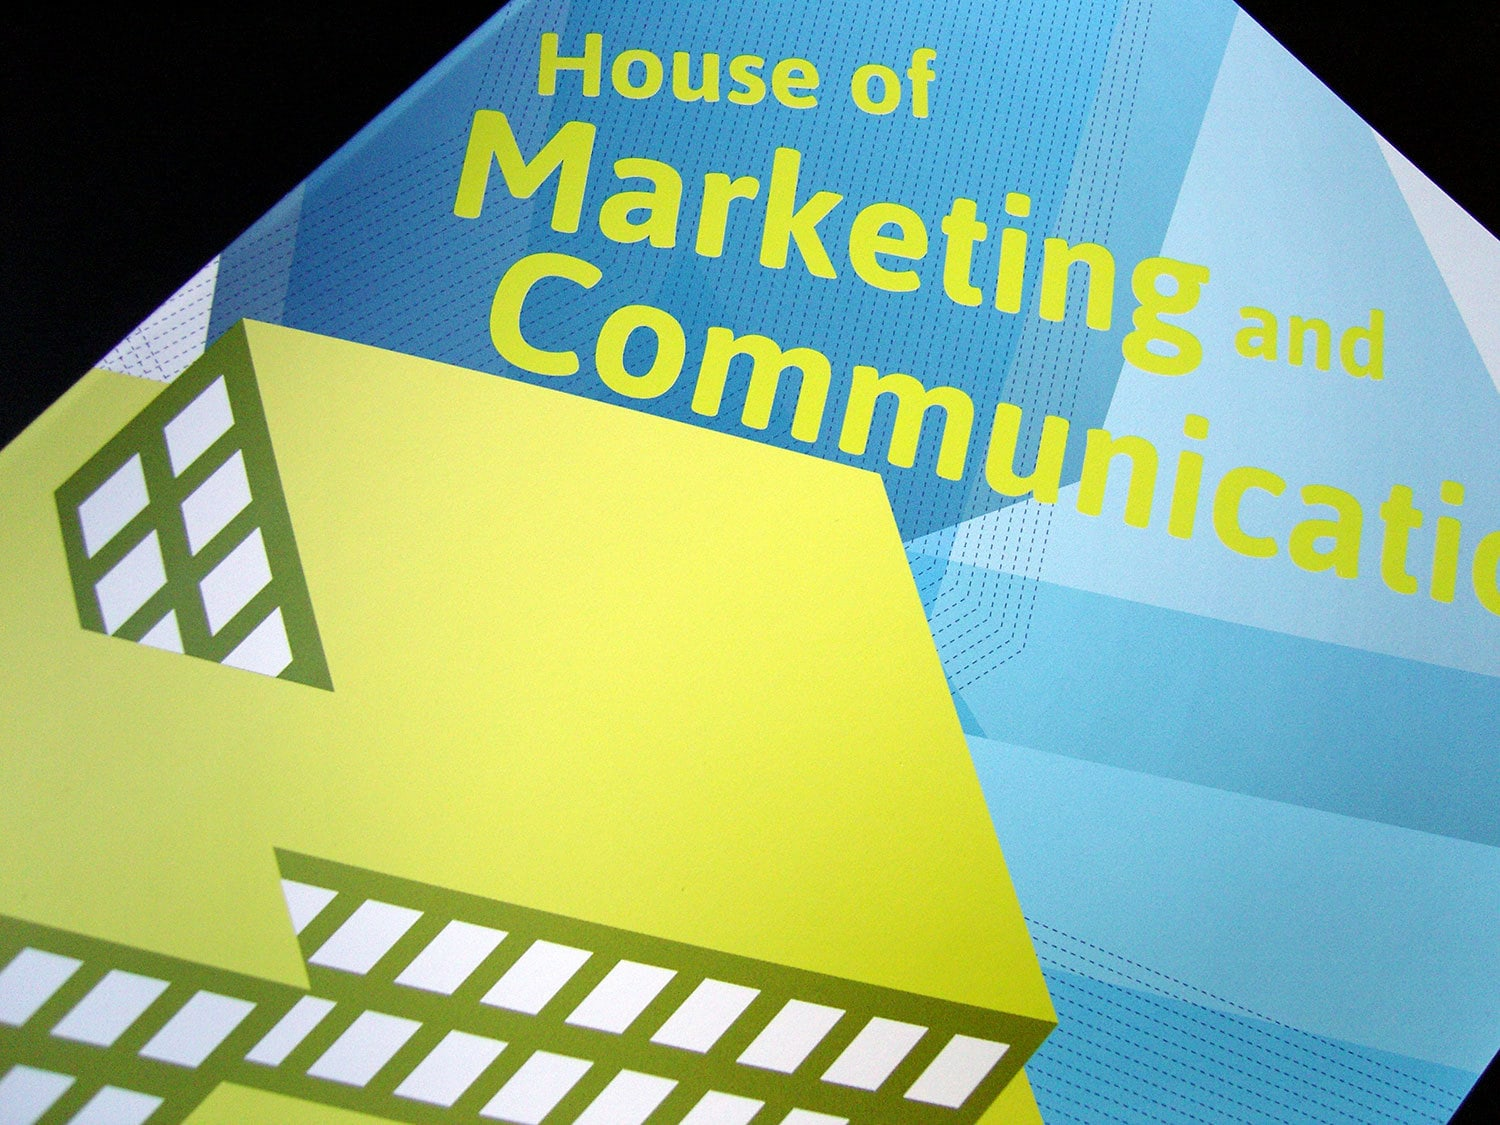 SIB / HWZ: House of Marketing